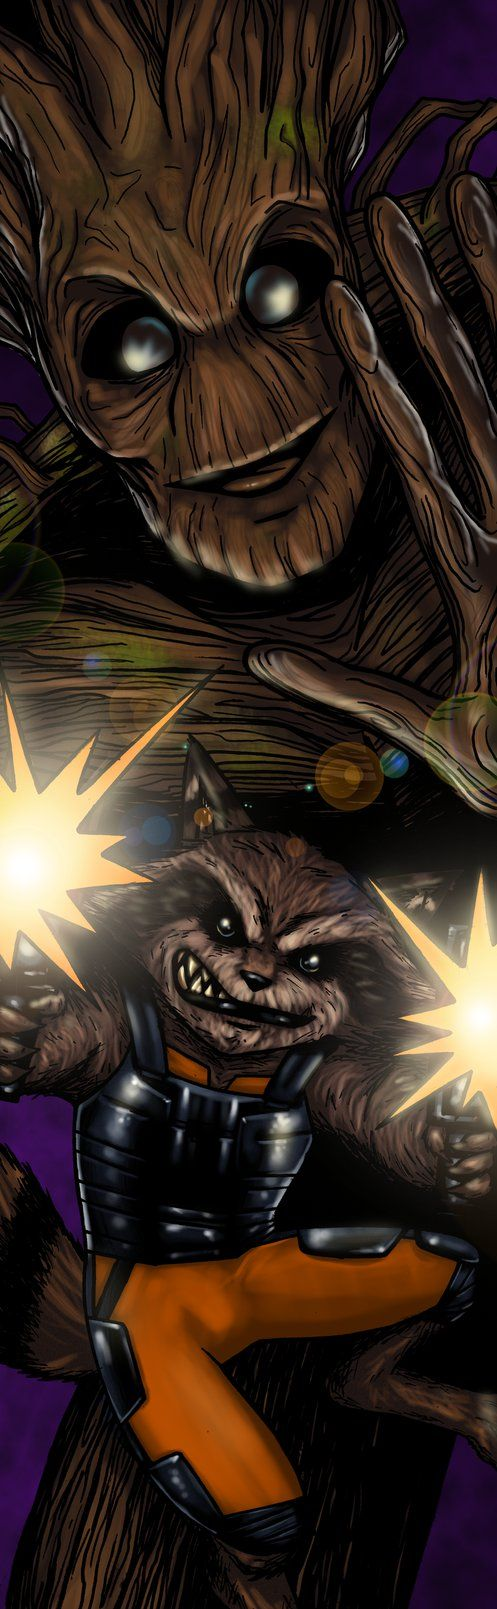 Rocket and Groot by TheRealSurge on DeviantArt